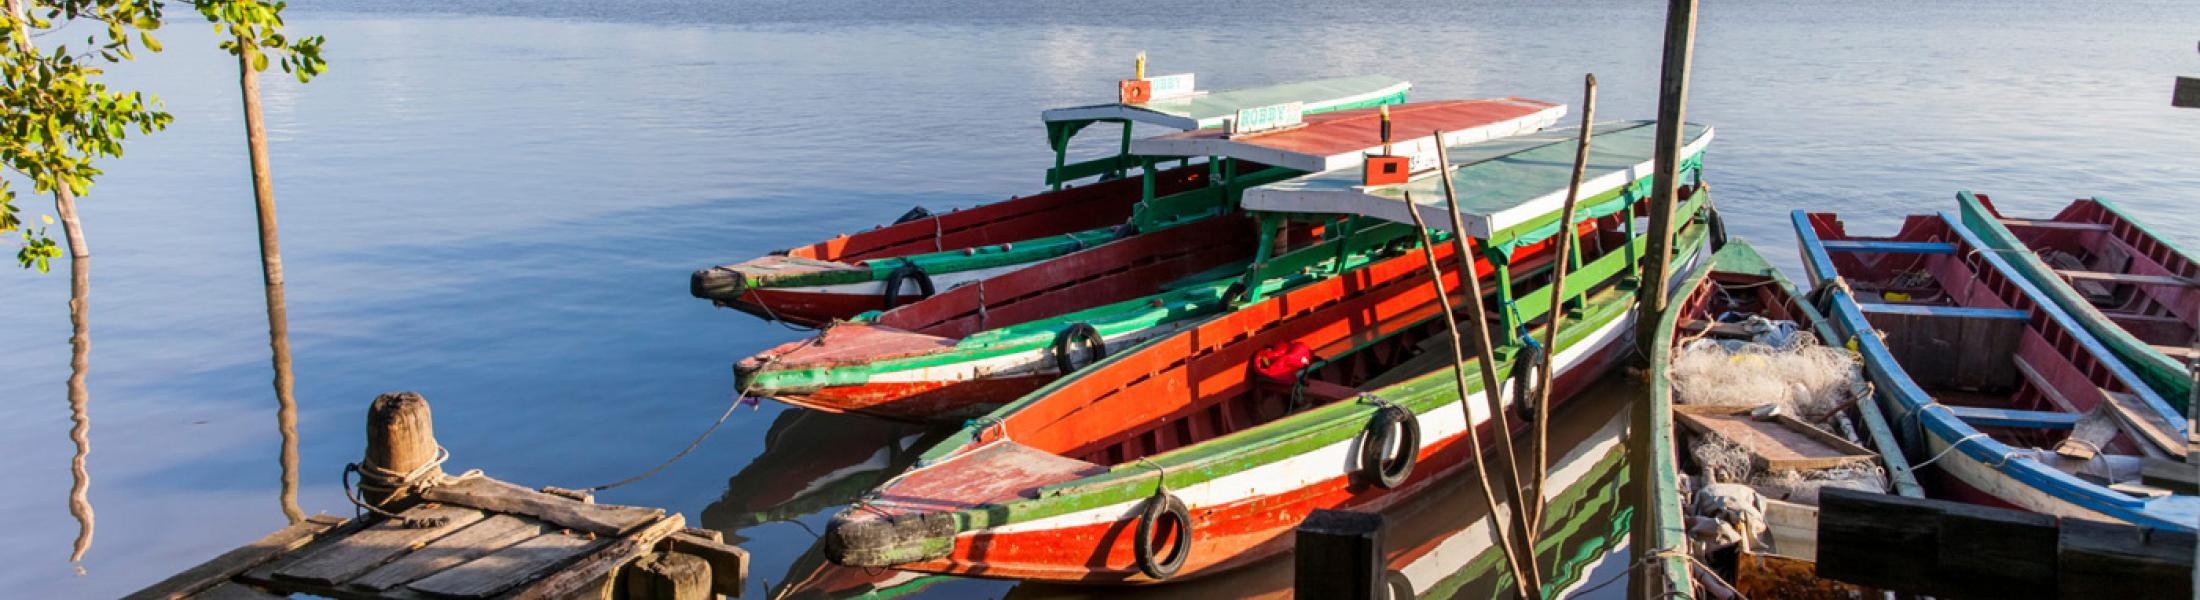 Image of colorful boats tied to a dock on a still body of water.